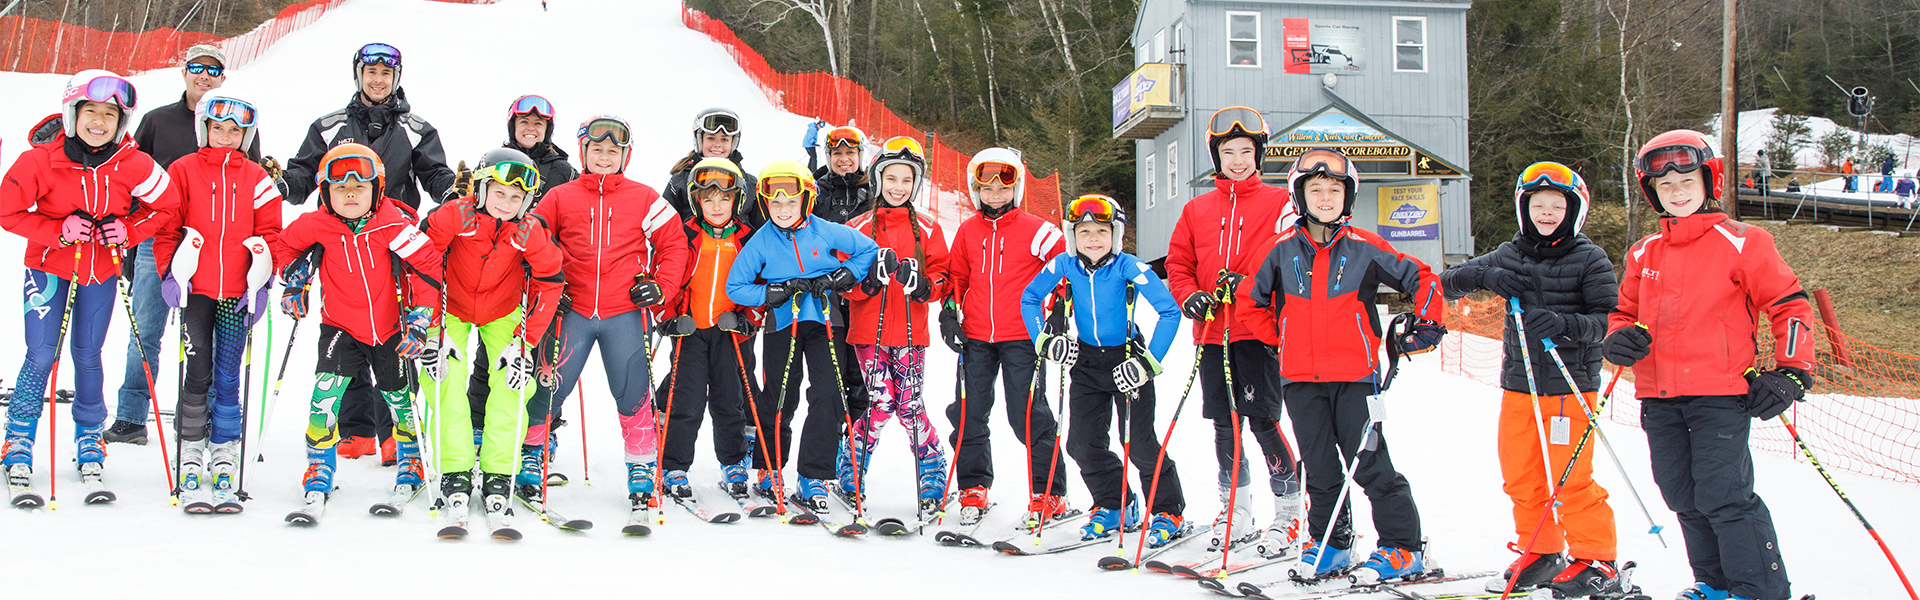 Group image of Ski Sundown race team